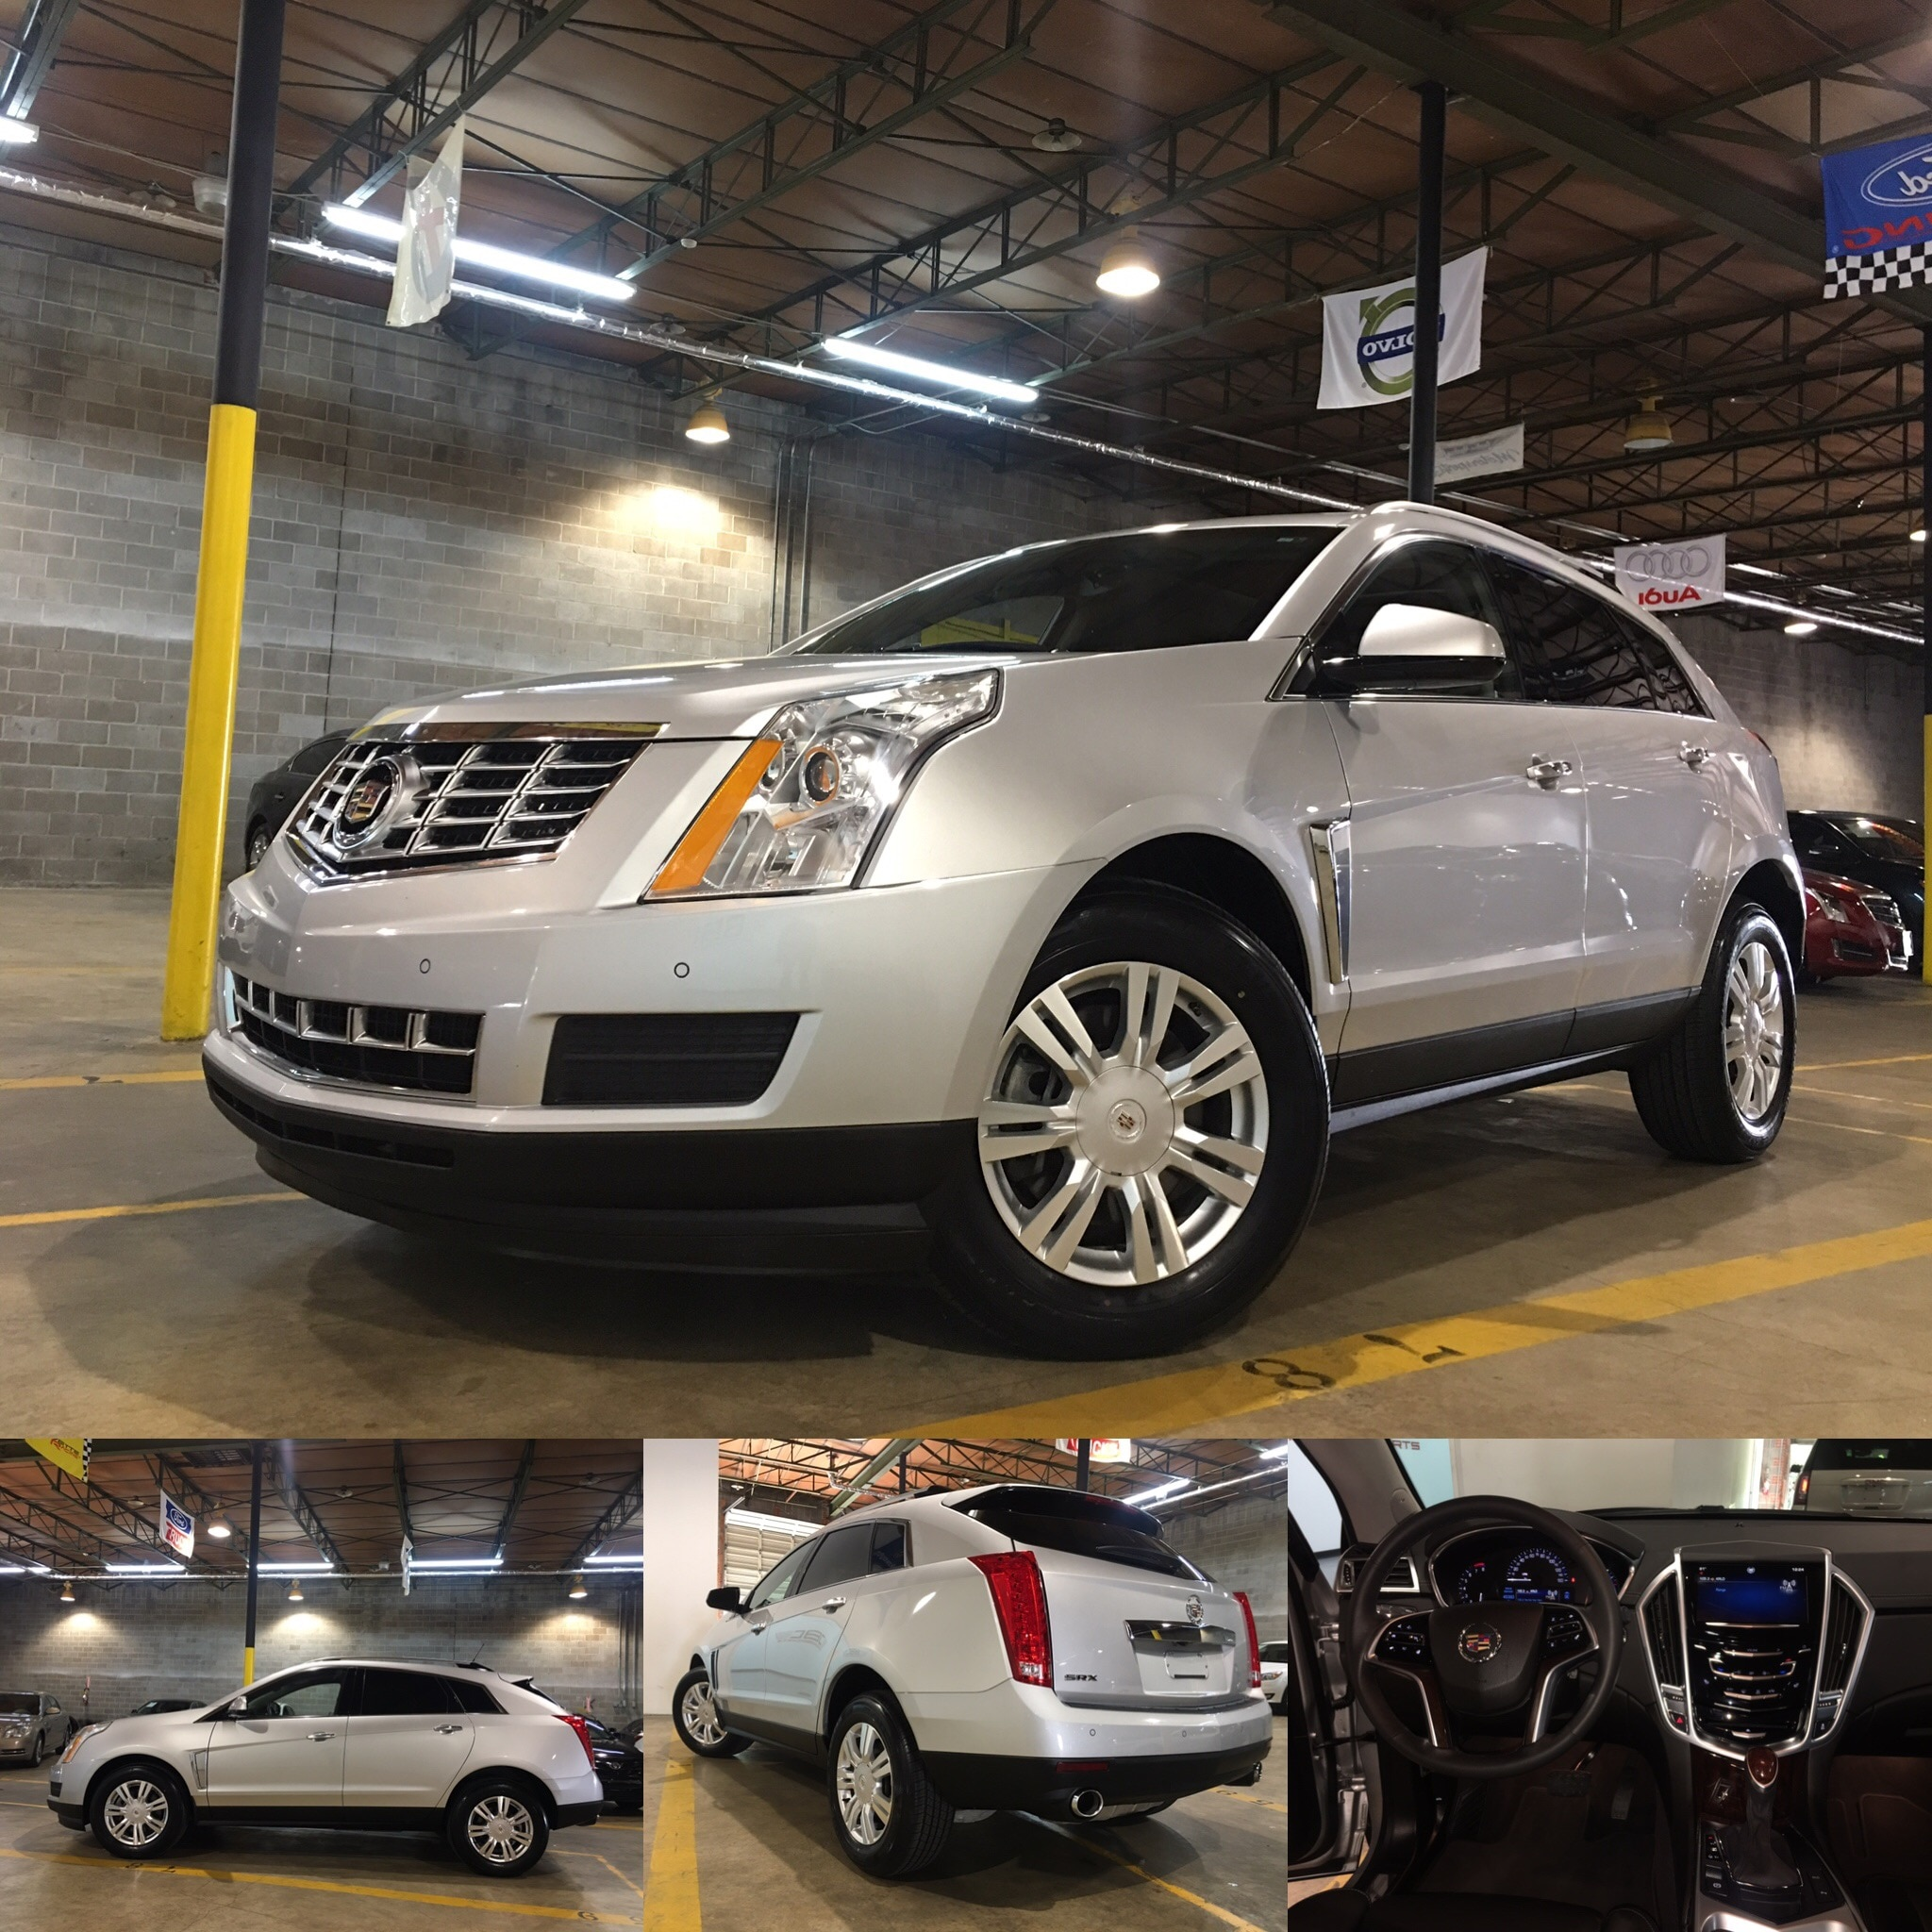 cars srx brads used inc cadillac incbrads vehicle img